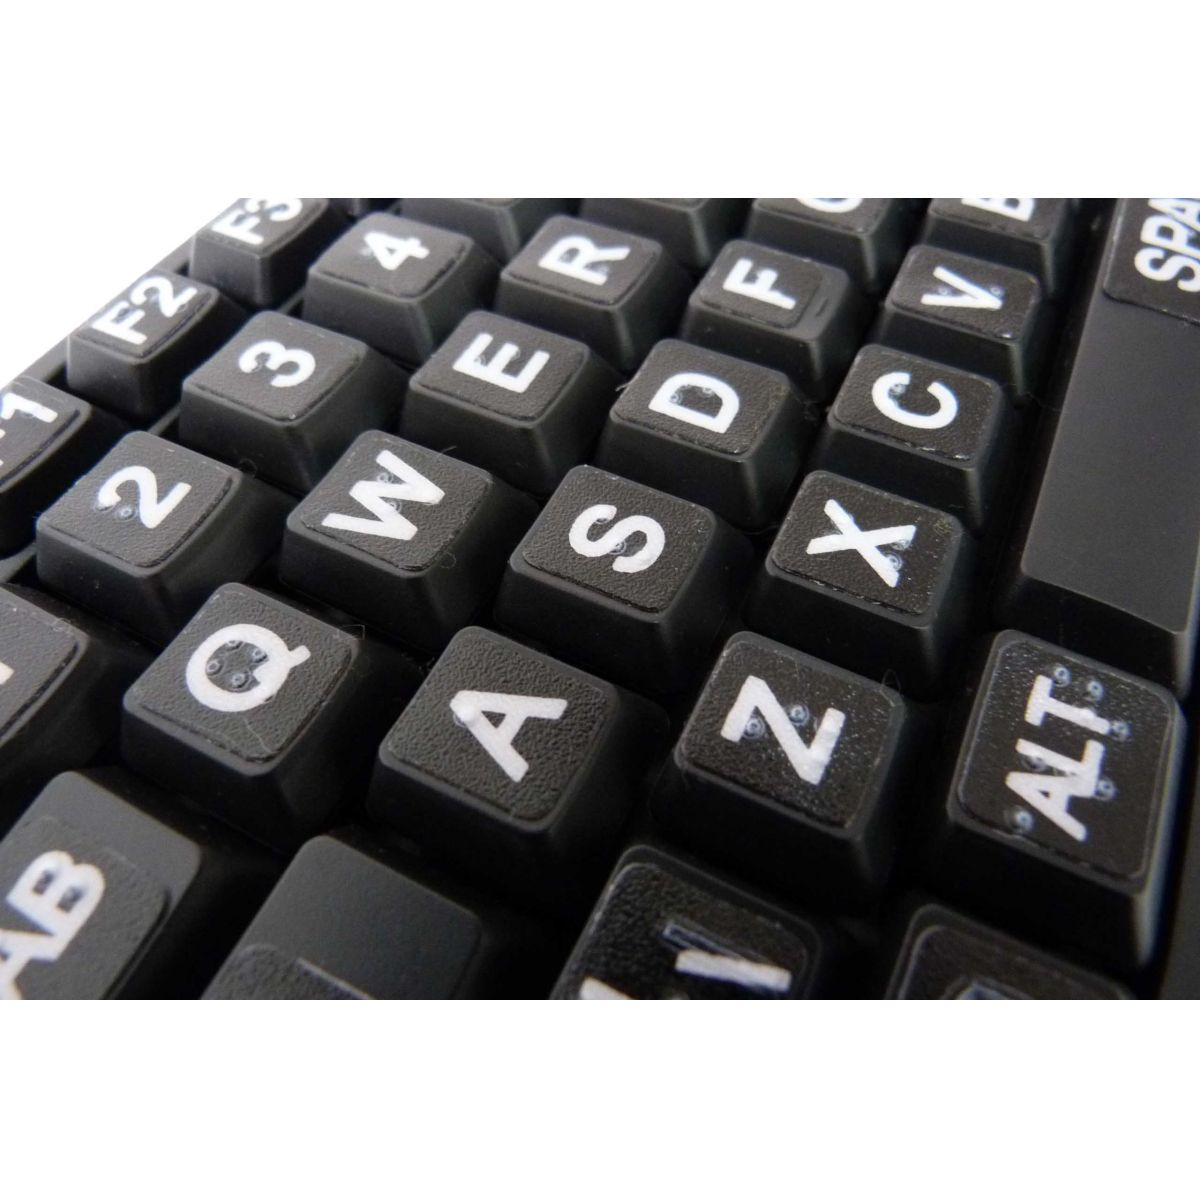 Teclado Braille - USB